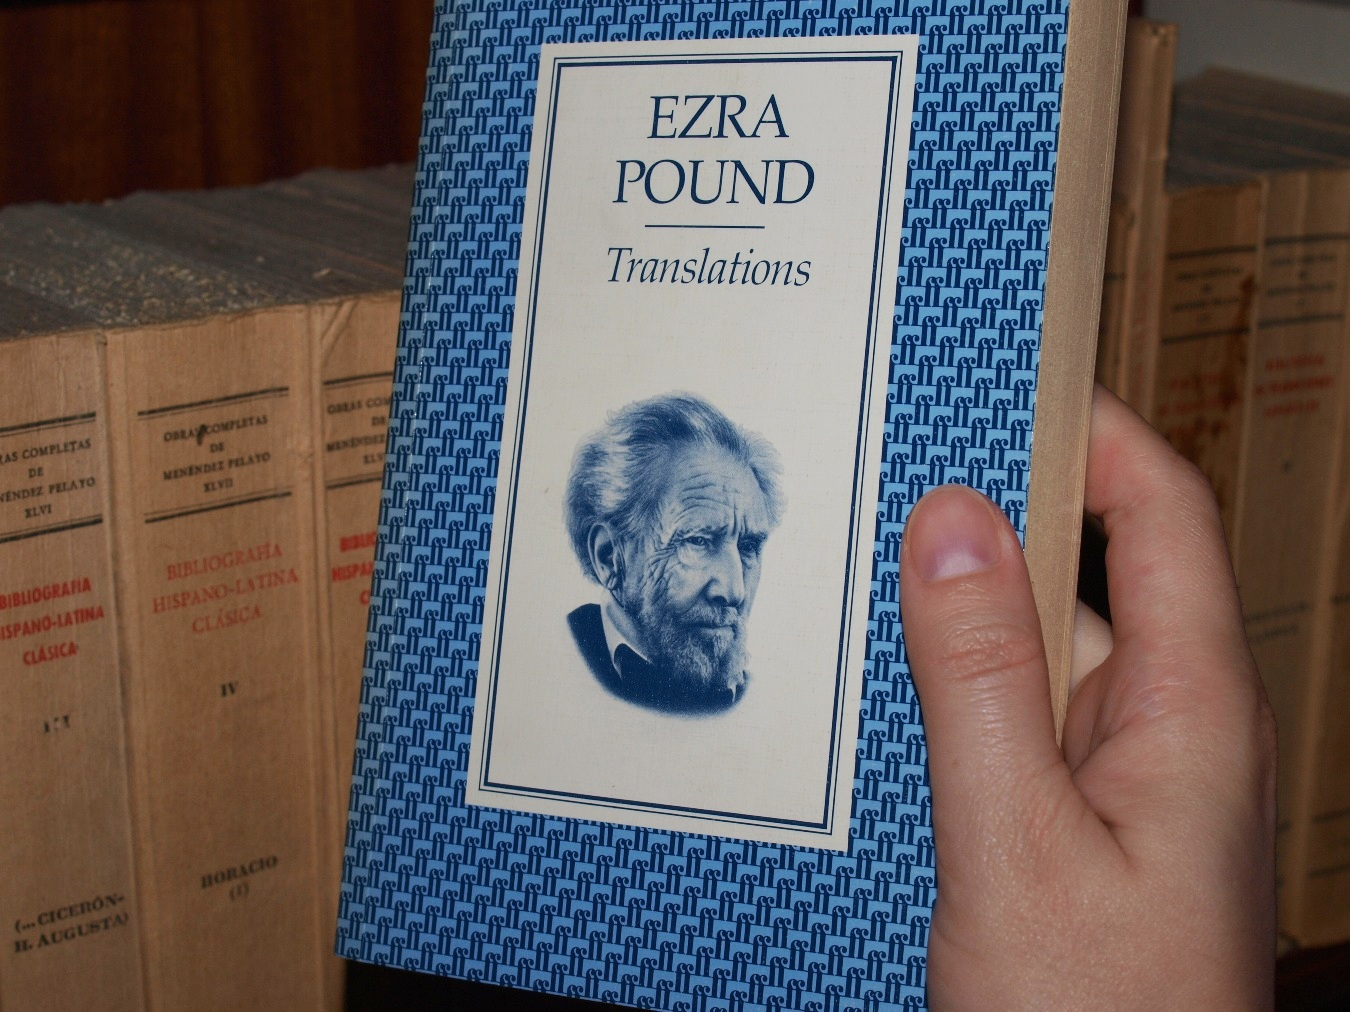 ezra pound essay on translation Literary of pound essays ezra pdf december 14, 2017 @ 12:36 pm ea300 essays on success reviews of literary of pound essays ezra pdf.